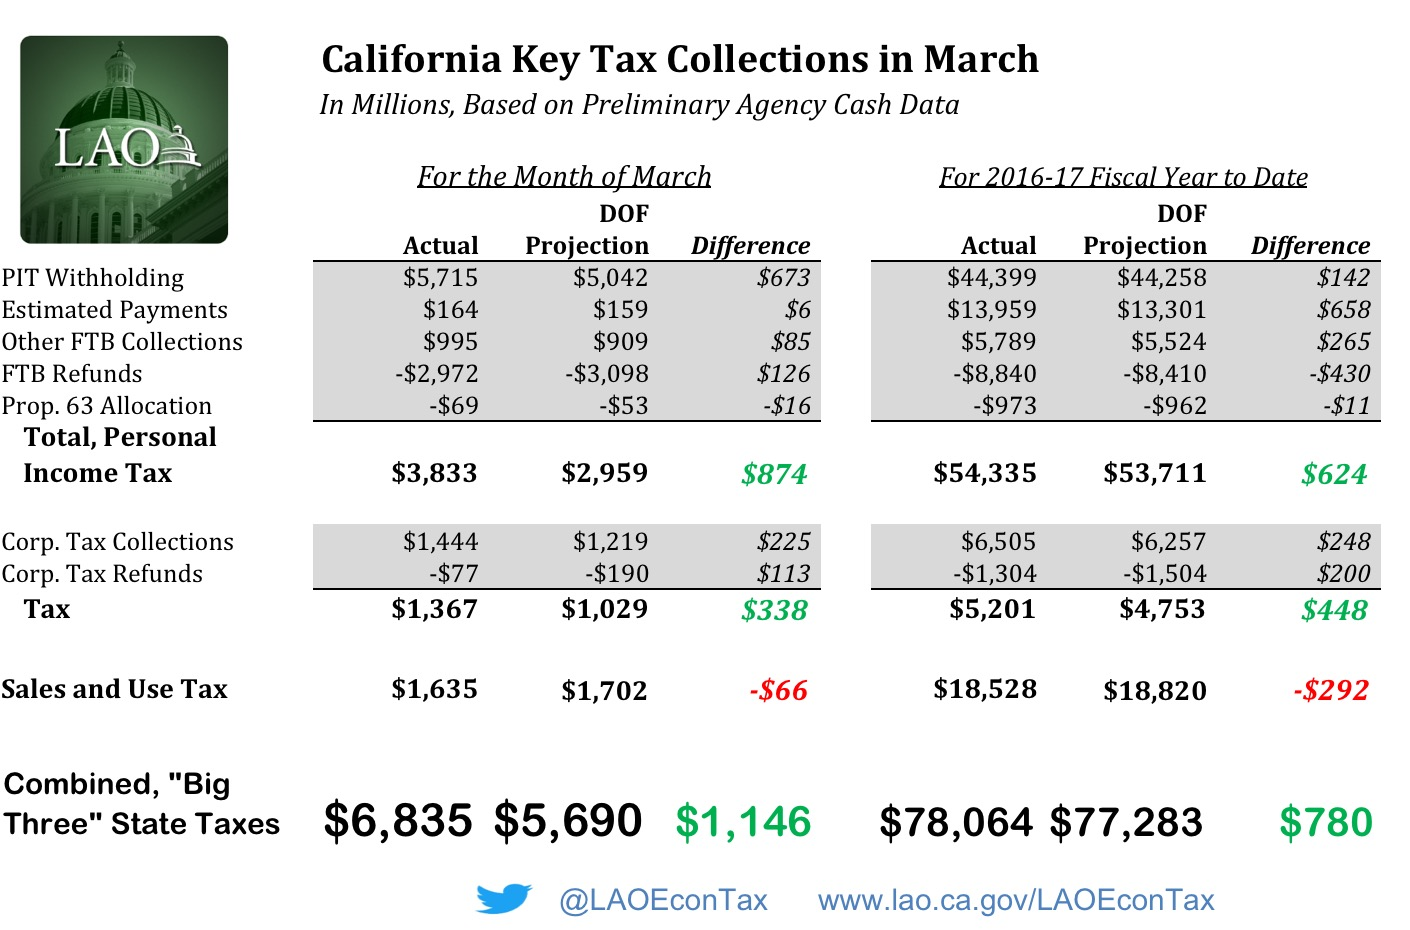 Table showing preliminary tax agency data on California income and sales tax collections in March.